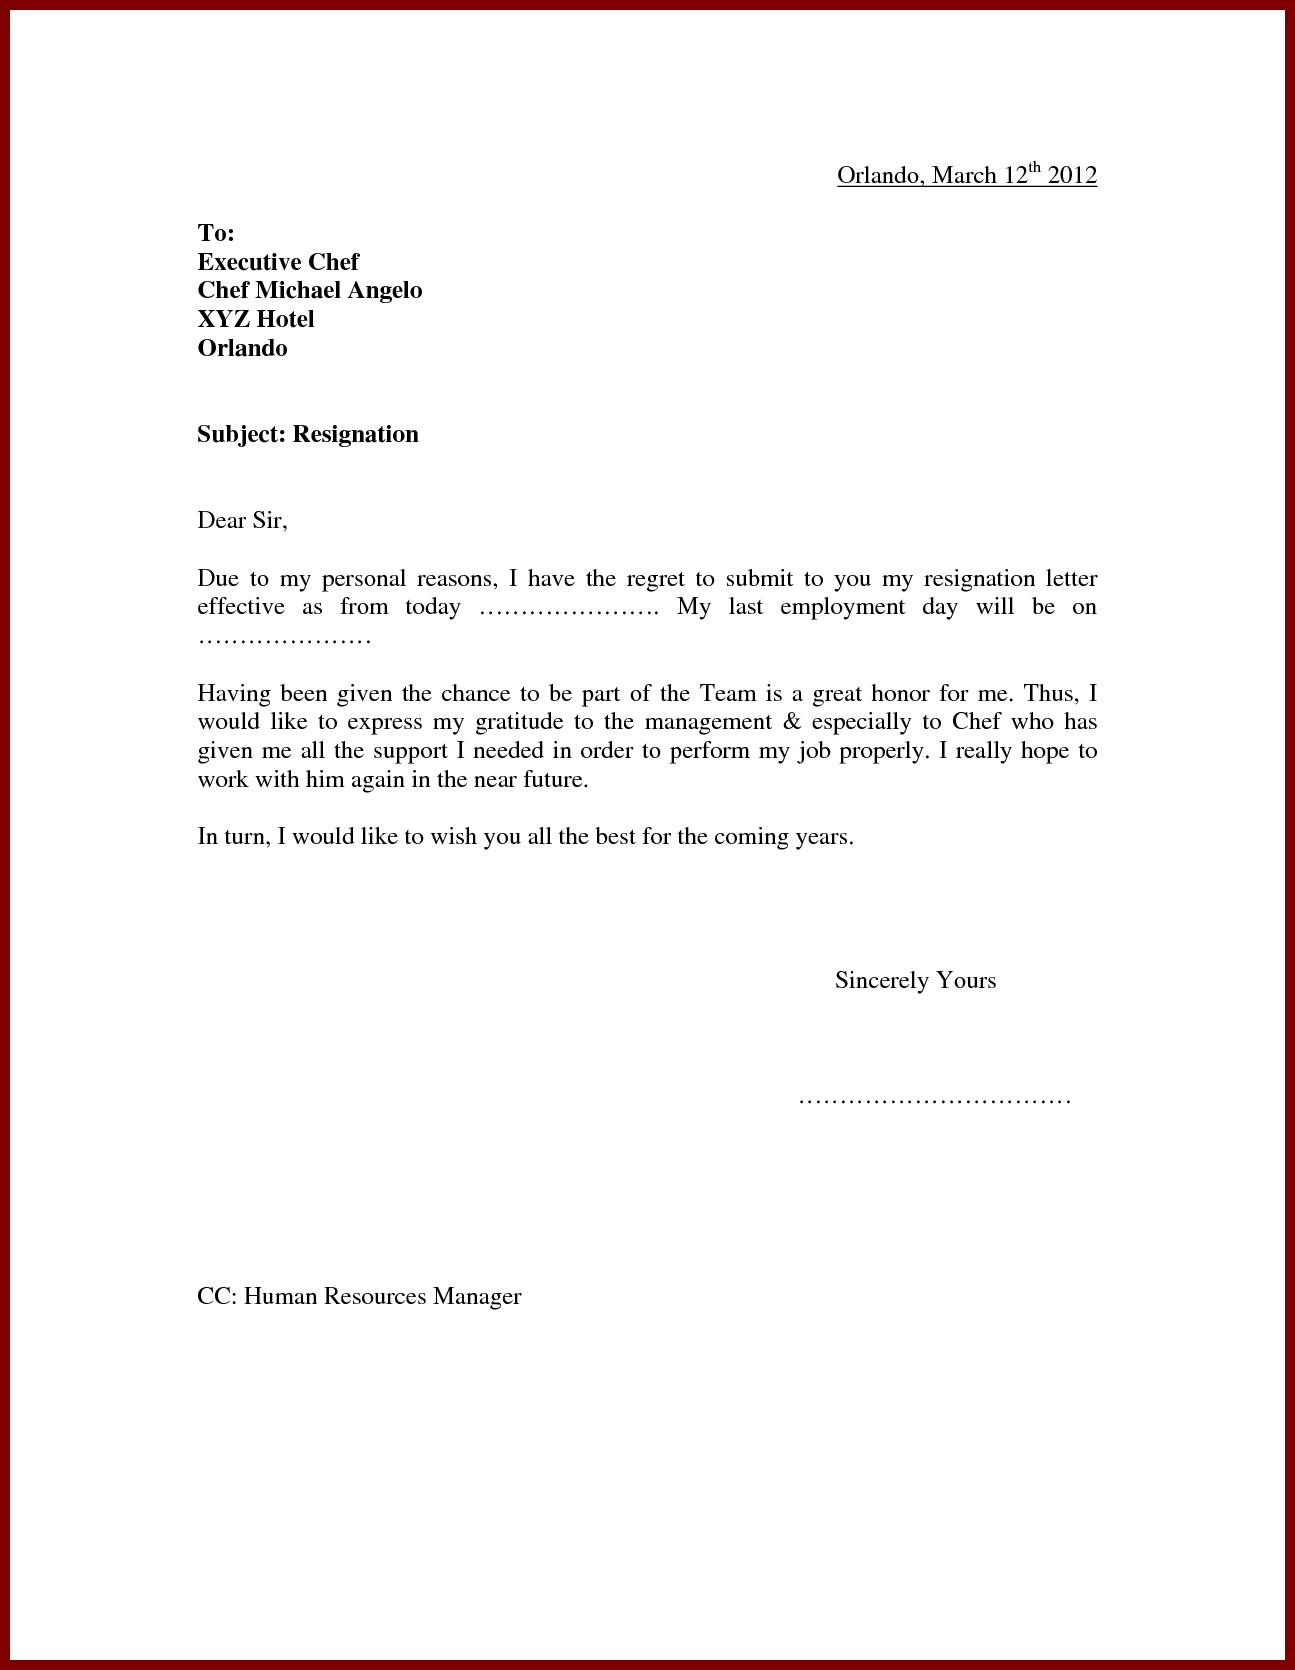 simple resignation letter sample with reason samples of resignation letters for personal reasons 25394 | 5b17c7358275a2d66b3baded78790dbe